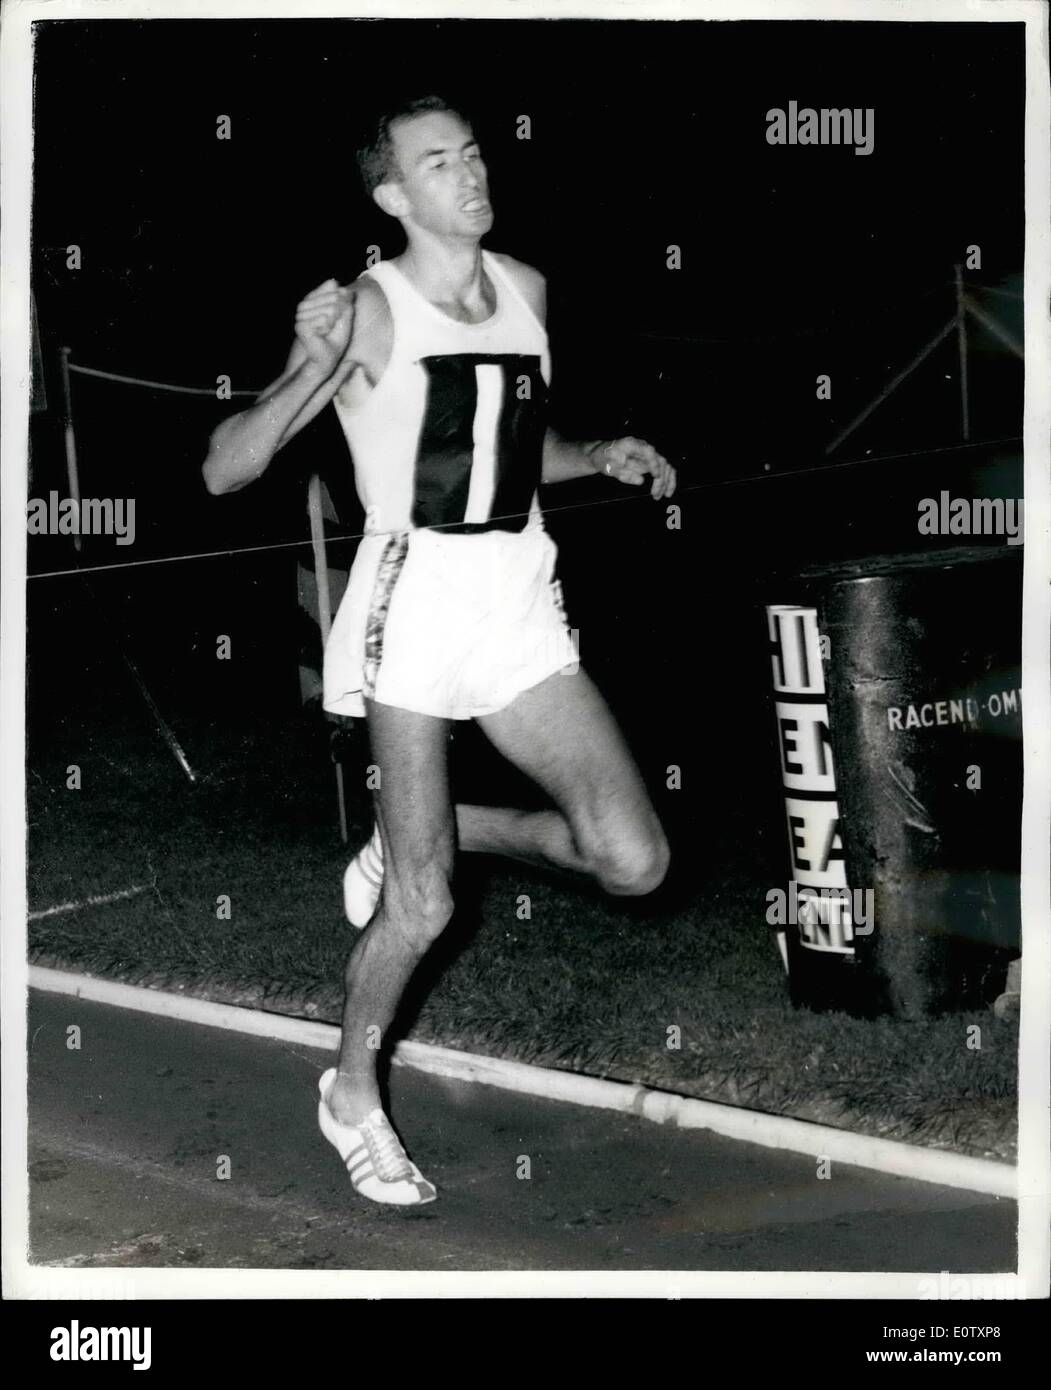 Sep. 09, 1960 - Herb Elliott Does A Sub Four Mile - Once Again: Australia's Herb Elliott won the Mile race in the London Clubs Athletic at White City in 3m.59.8 secs - his seventeenth mils in under four minutes.Second was Michael Bernard of France. Phot Shows Herb Elliott winning his mile race last night. - Stock Image